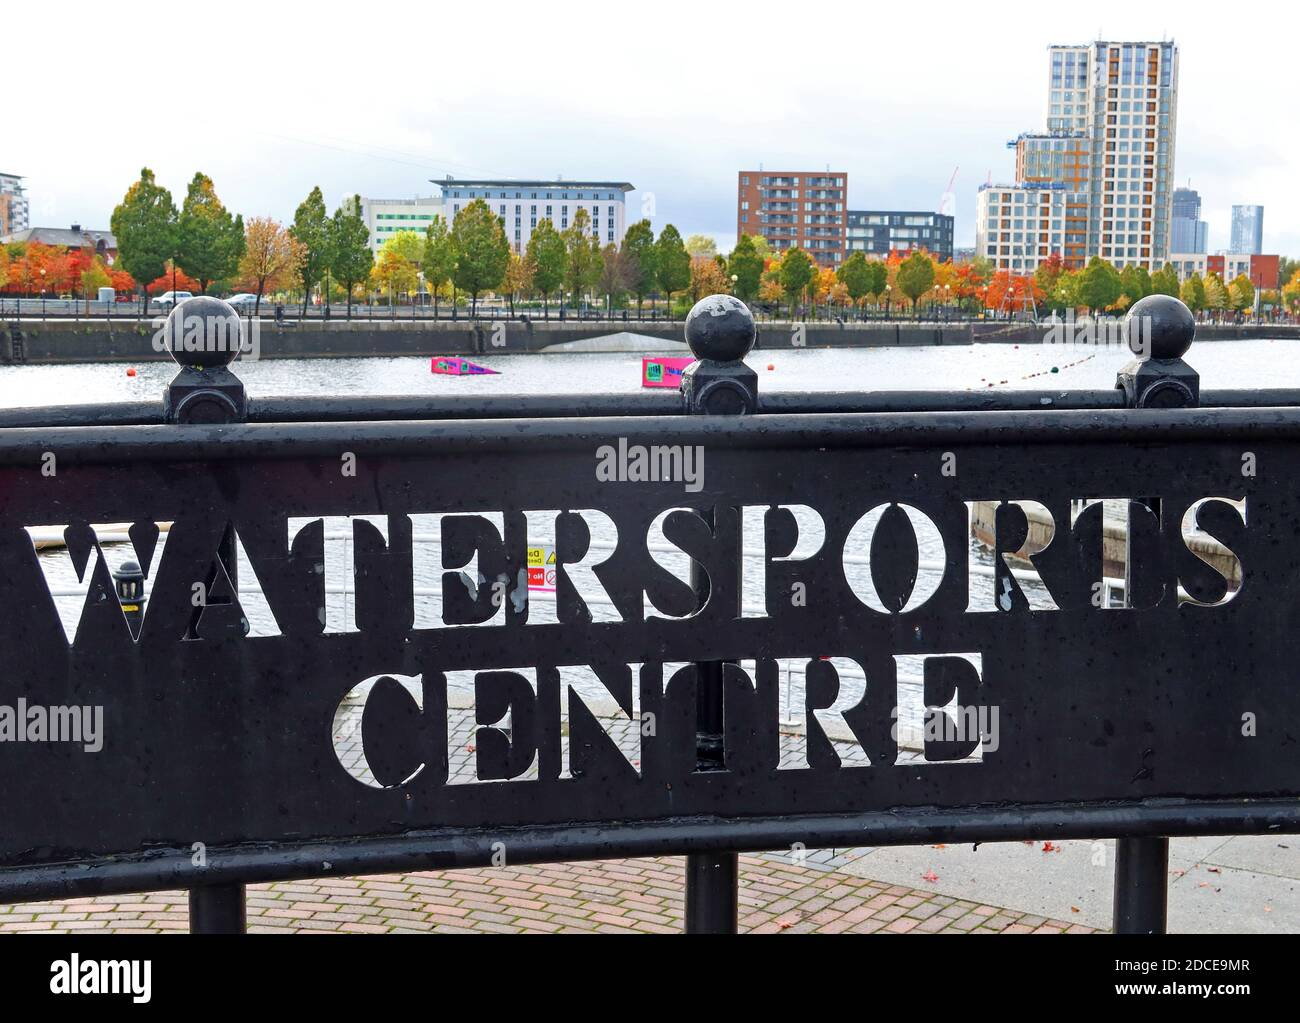 Hotpixuk,England,@Hotpixuk,UK,GB,Great Britain,GoTonySmith,centre,SCL,sign,quays,development,housing,watersports,activities,row,rowing,sculling,M50,manchester,Salford